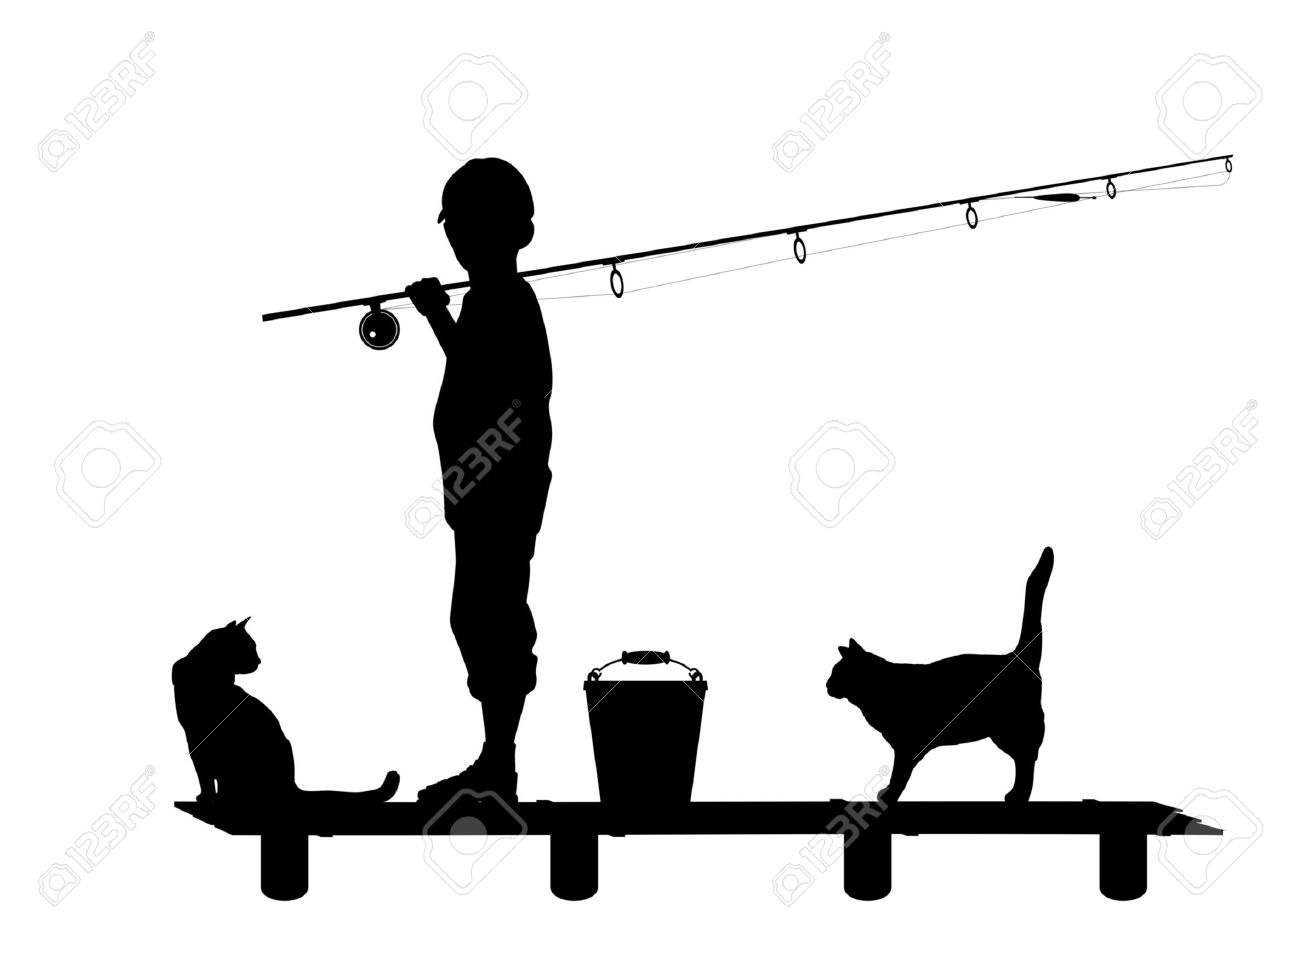 Silhouette Of The Child With A Fishing Tackle On Wooden Planked.